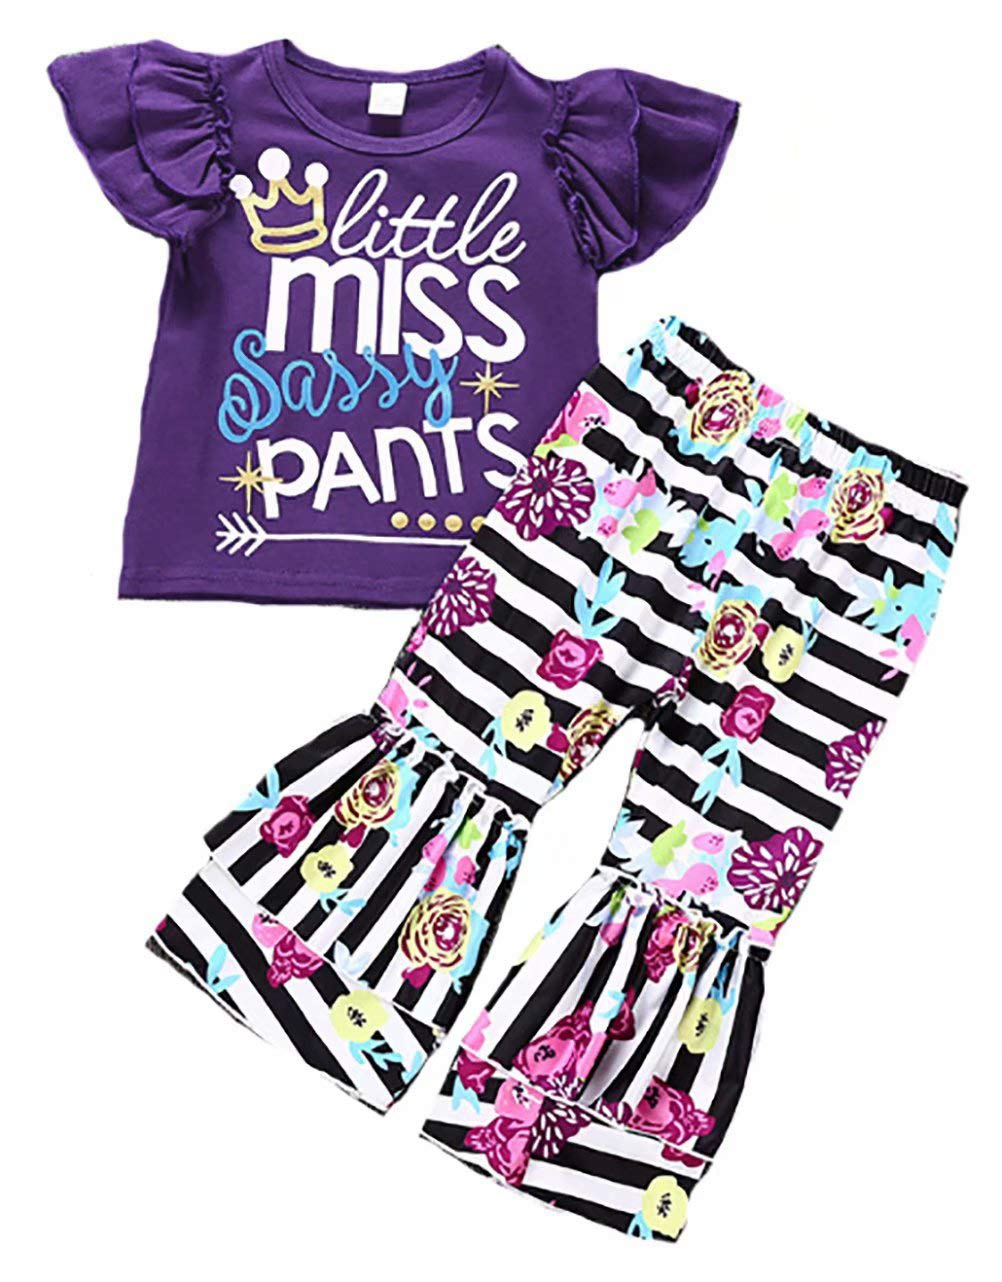 Baby Girls Little Miss Sassy Pants Print Shirt Tops Floral Bell-Bottoms Pants Outfits Size 4-5 Years/Tag120 (Purple)